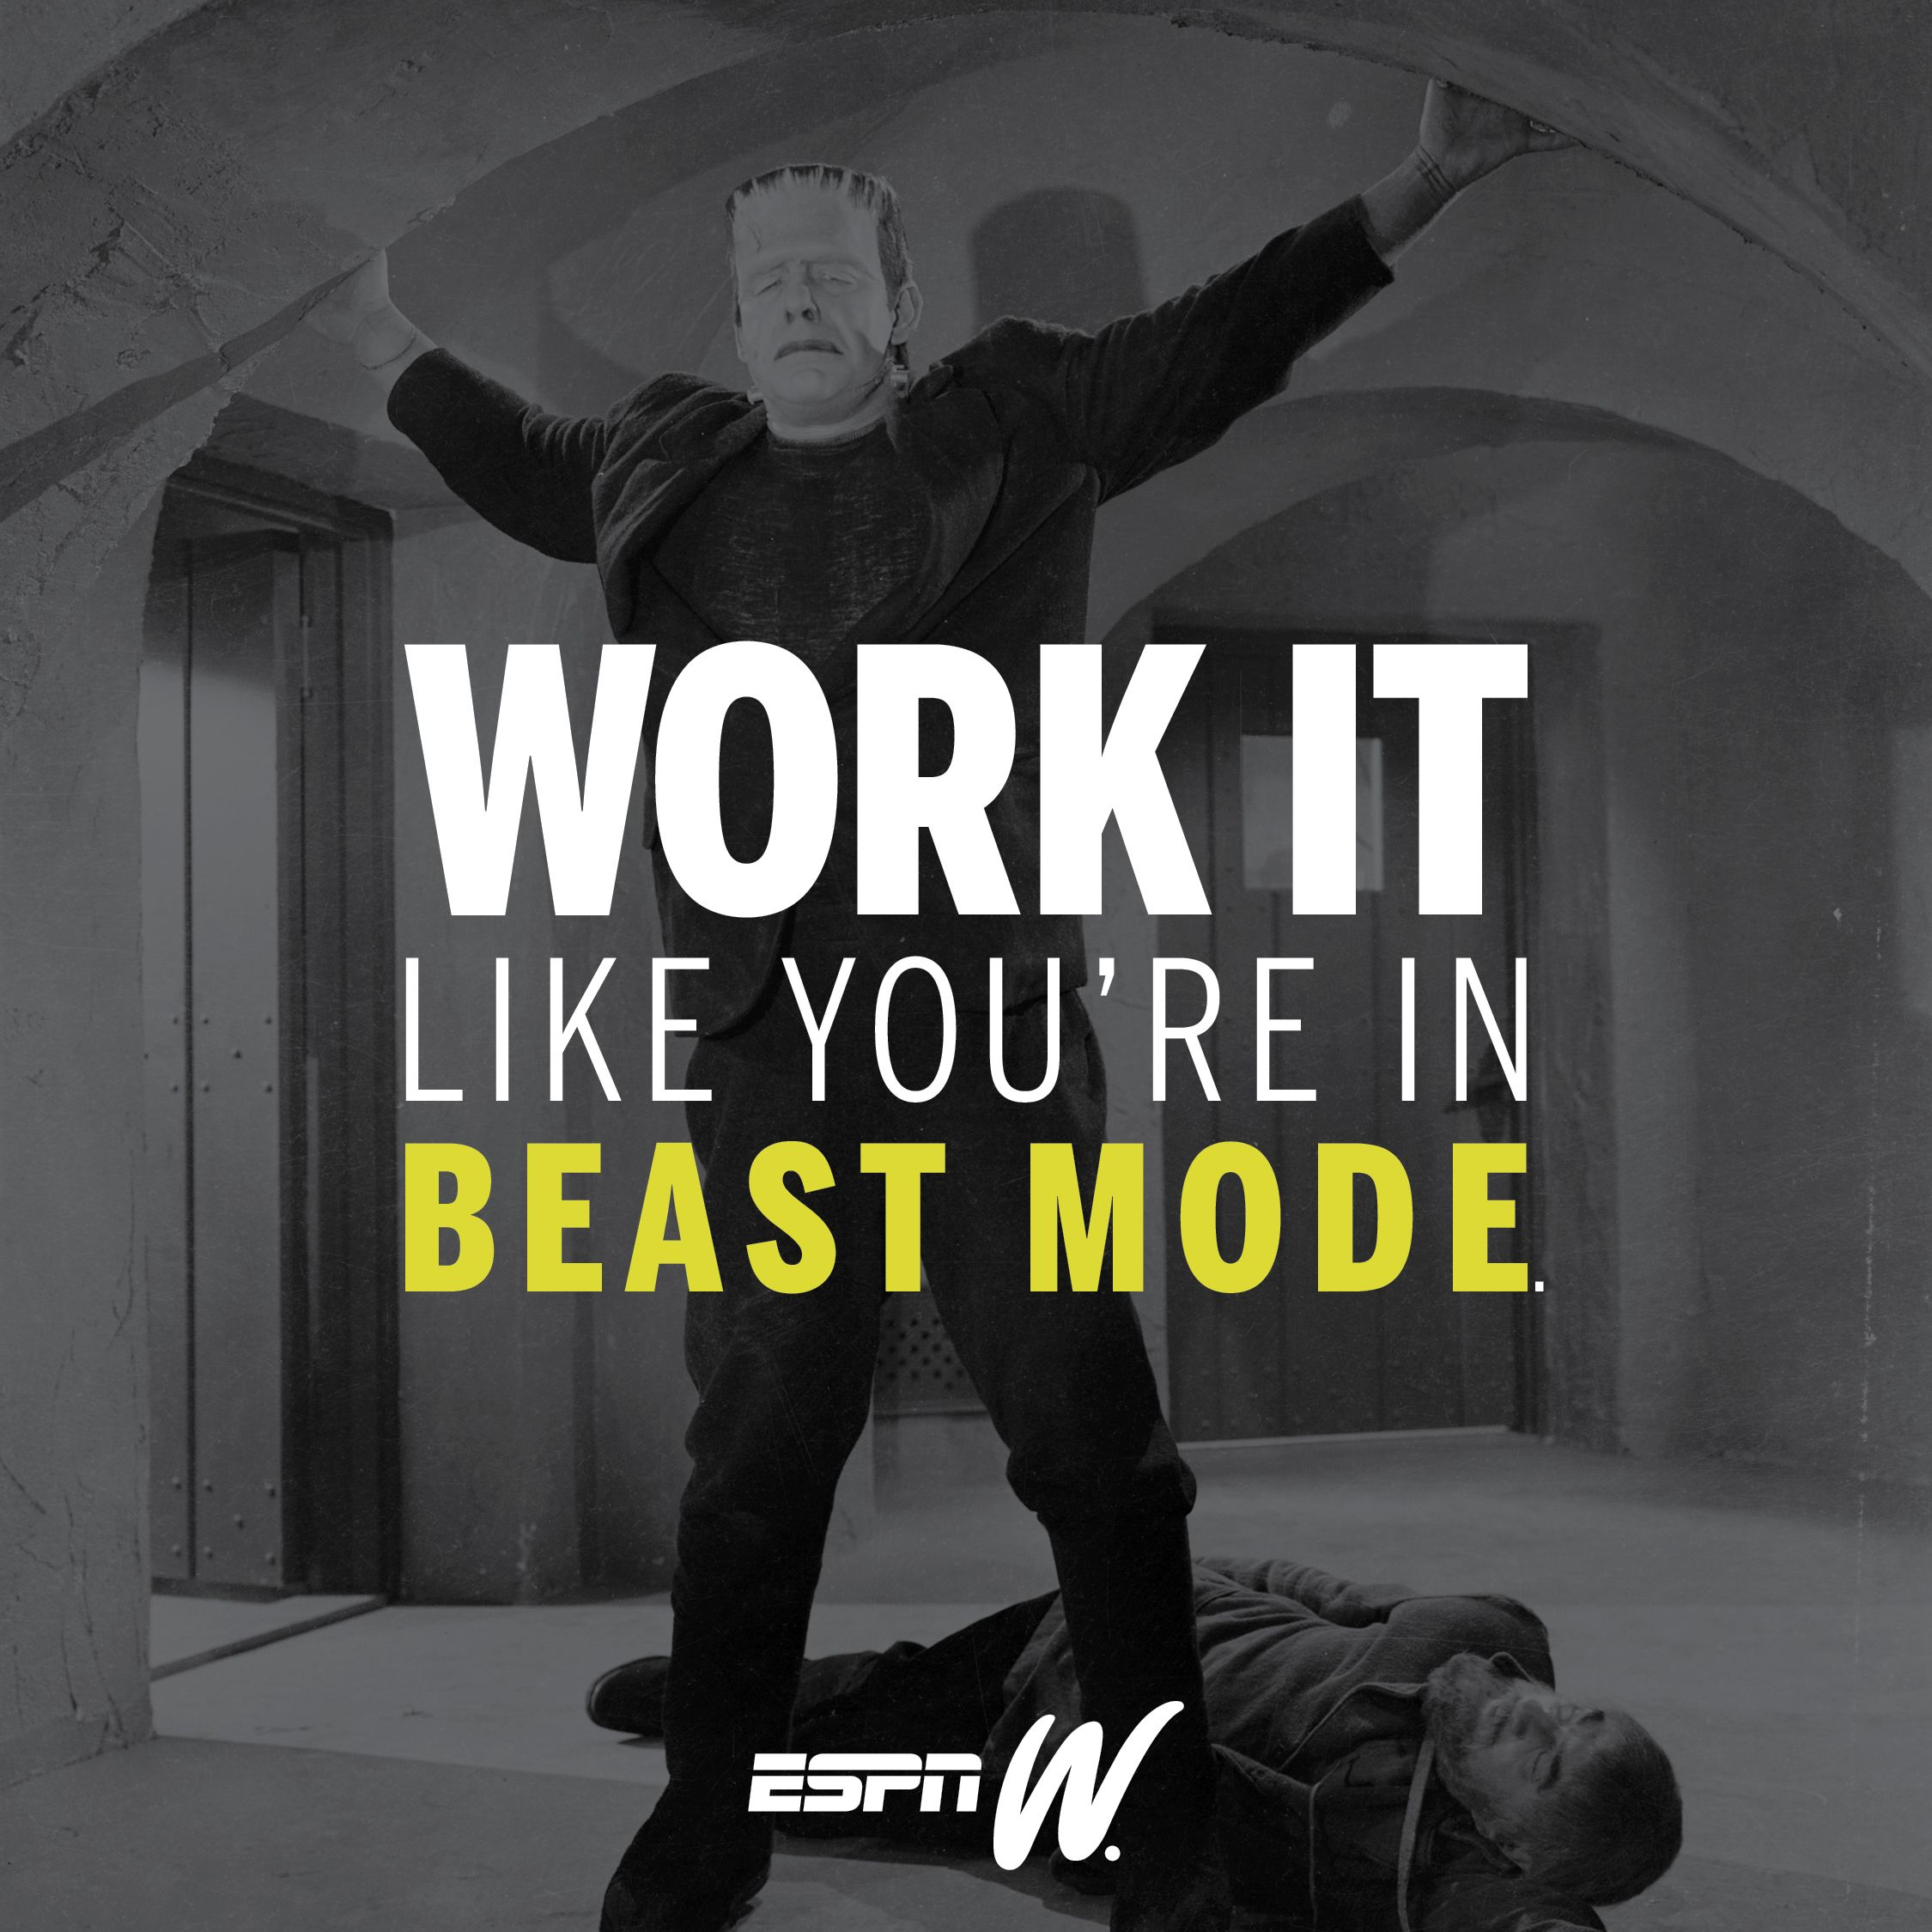 Work it like you're in beast mode. betfront.co sports